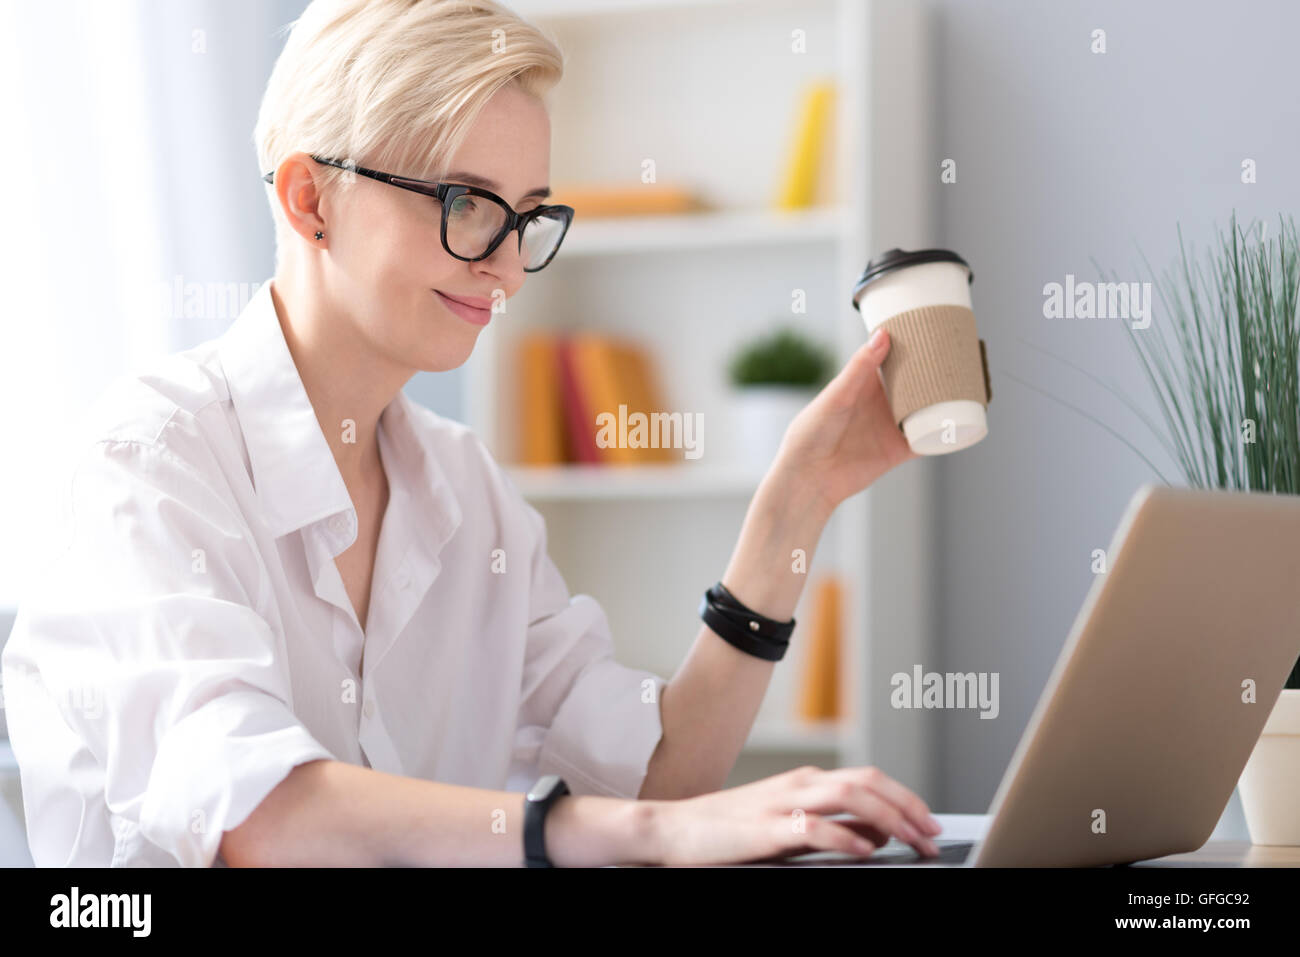 Woman drinking coffee and tapping - Stock Image